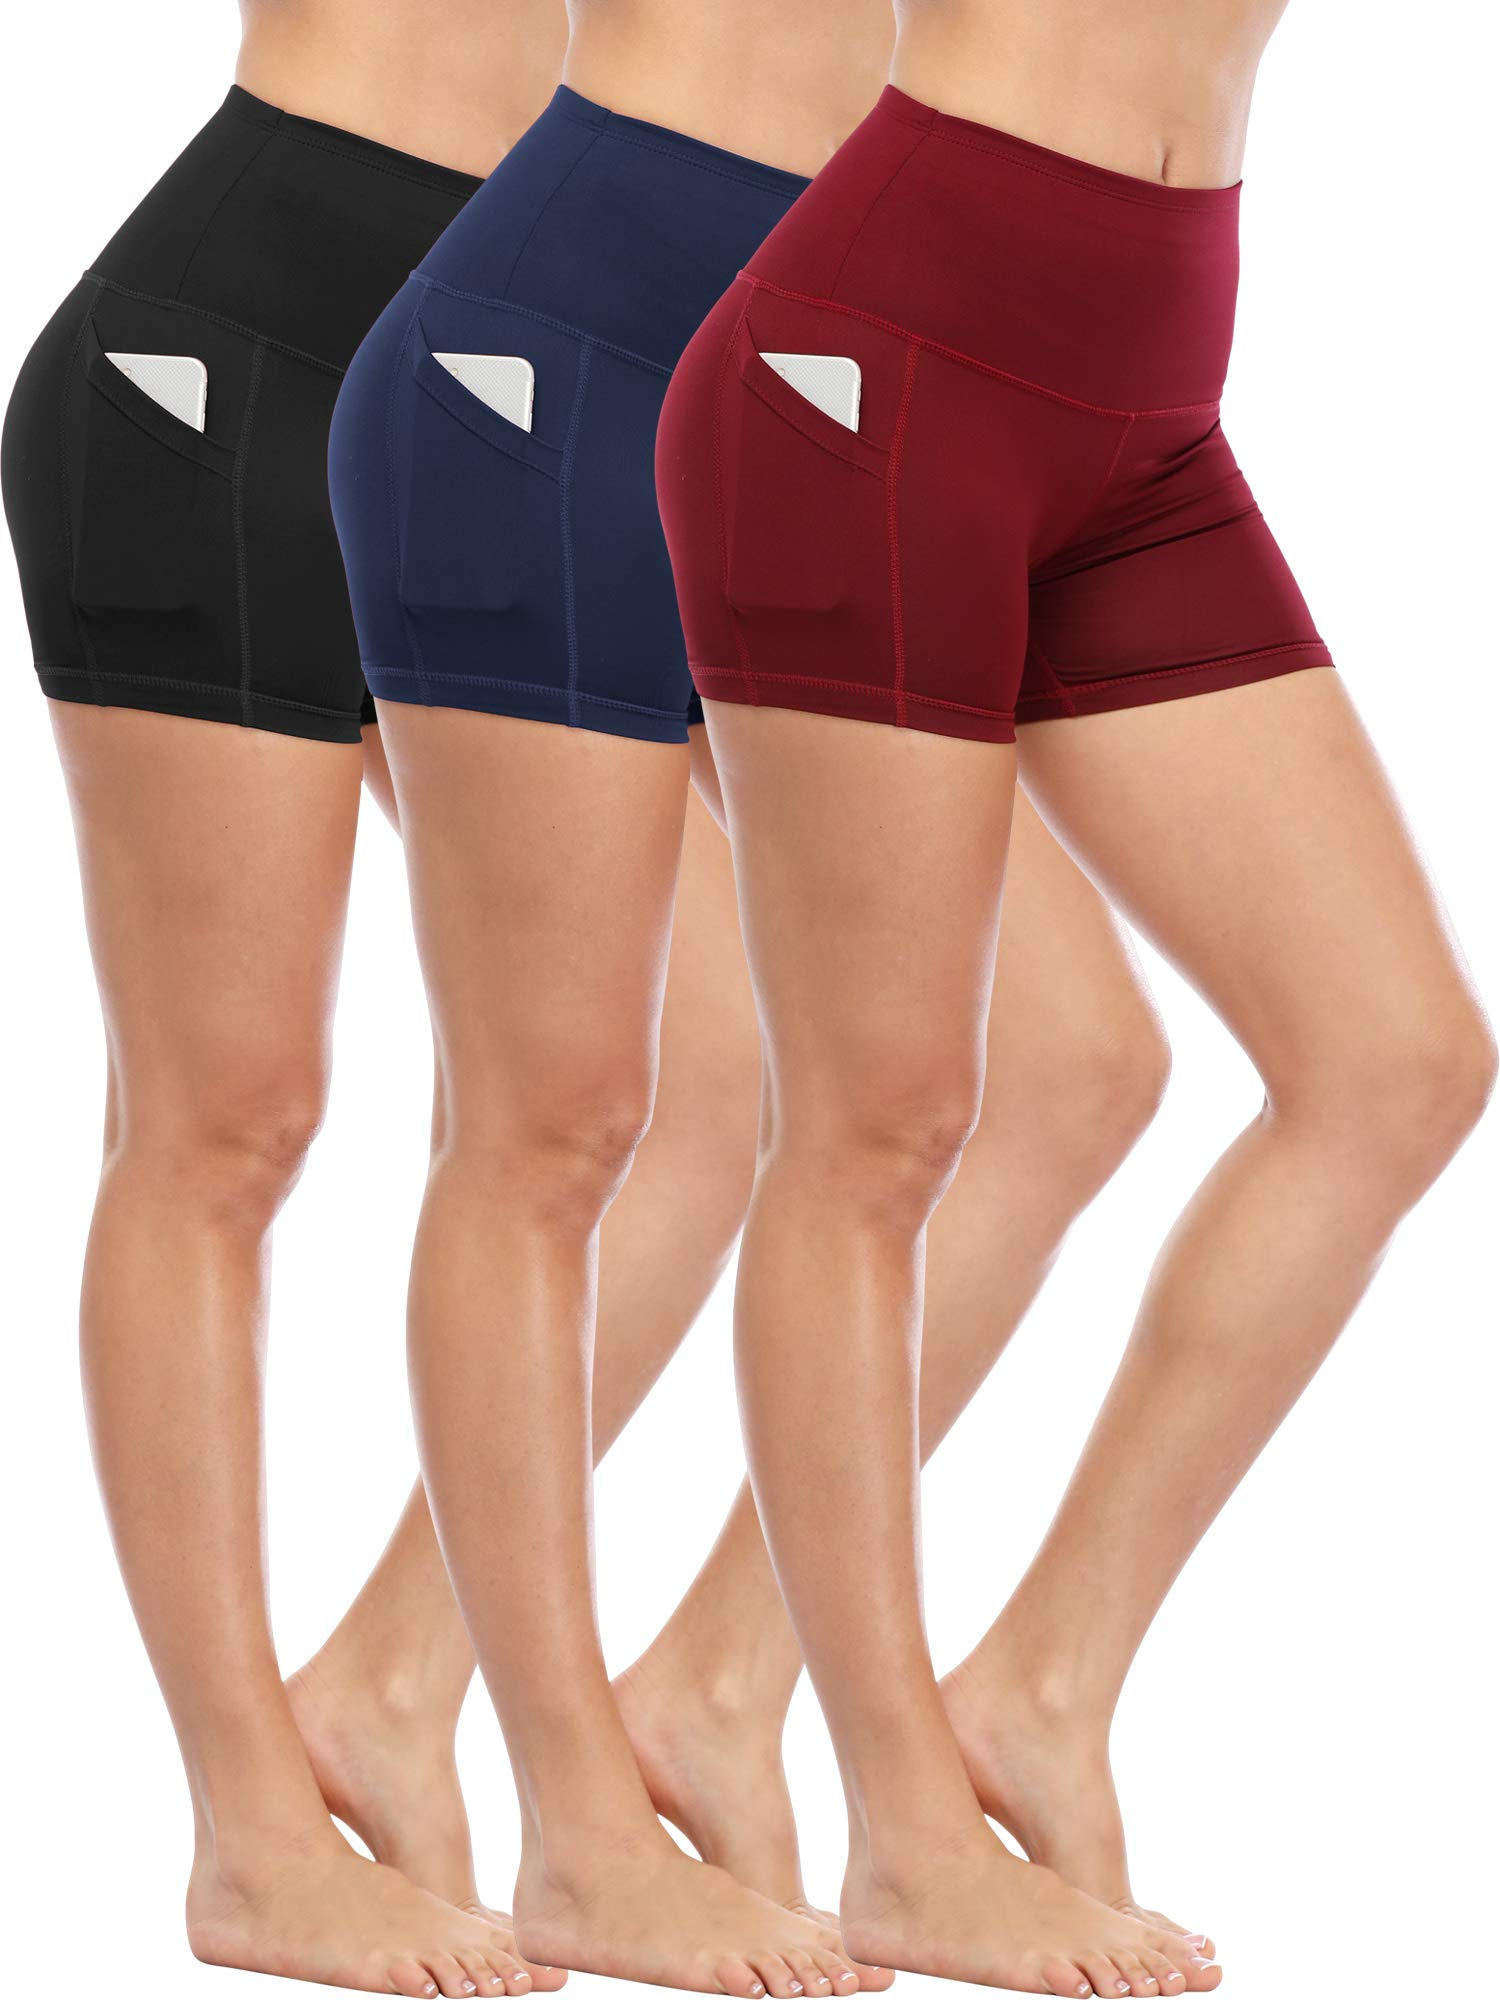 Cadmus Women's Tummy Control Workout Running Short Out Pocket,3 Pack,1016,Black & Navy Blue & Wine Red,XX-Large by Cadmus